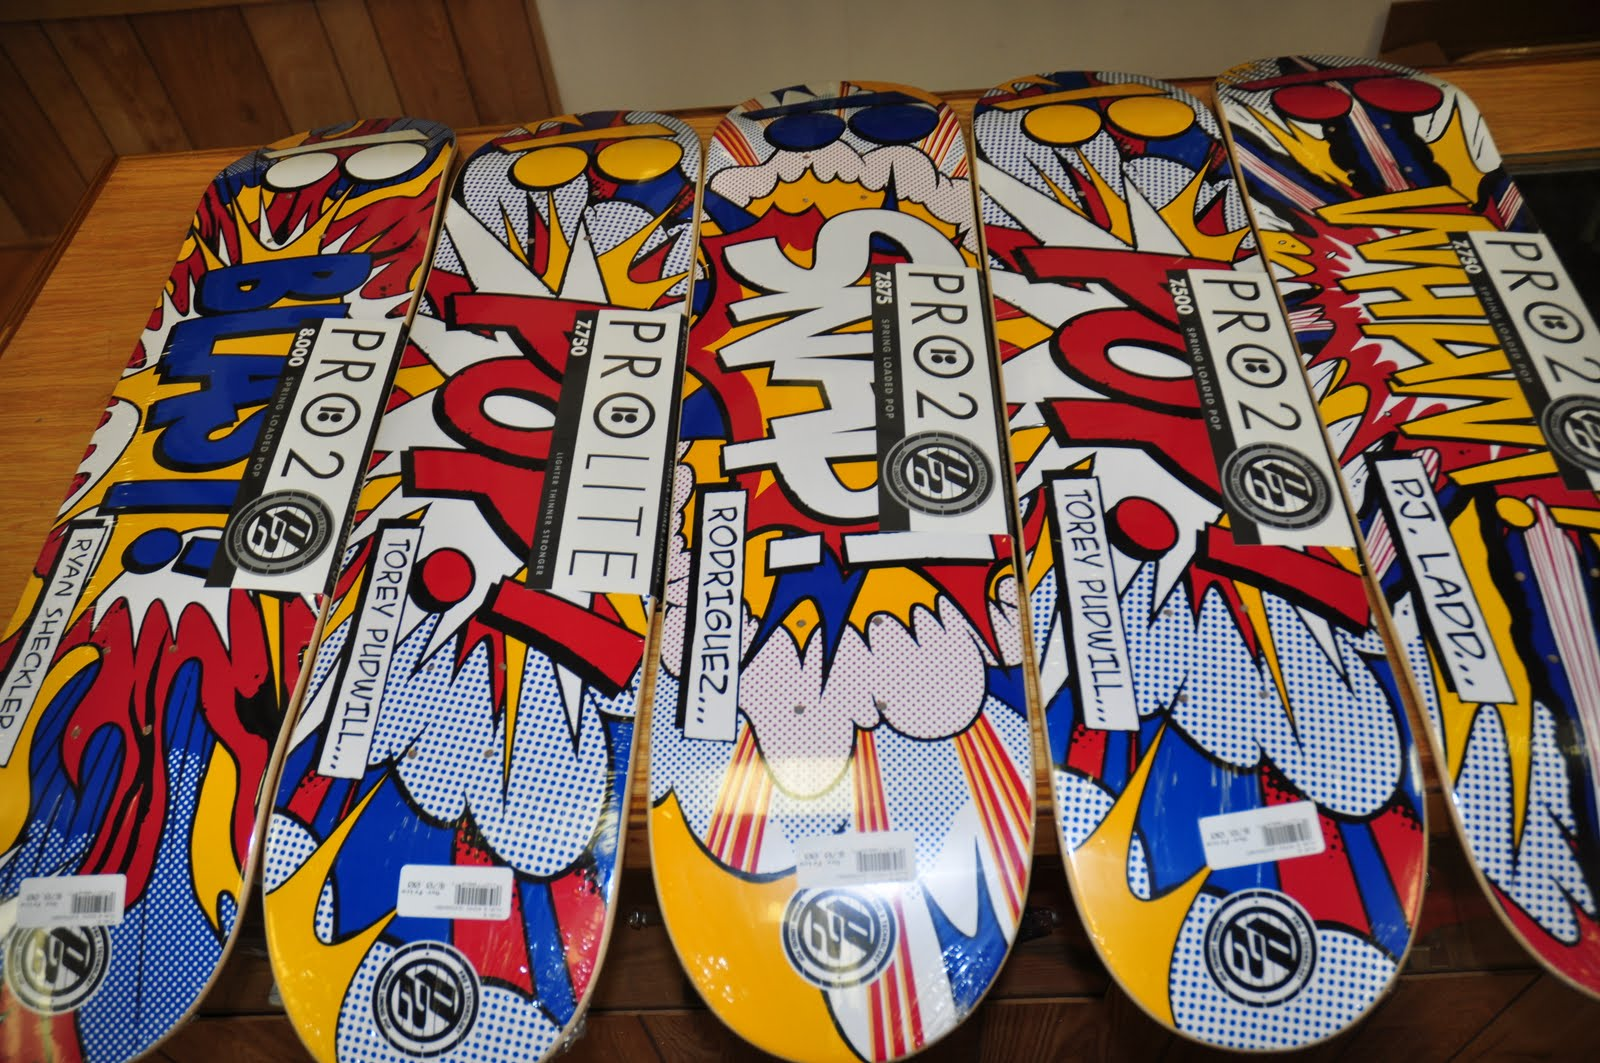 Alpine ski shop daily drops p2 is spring loaded pop sonan b new p2 wood from plan b with spring loaded pop these are ridiculous lots of sizes from the best skate team and great wood from paul schmitt baanklon Gallery